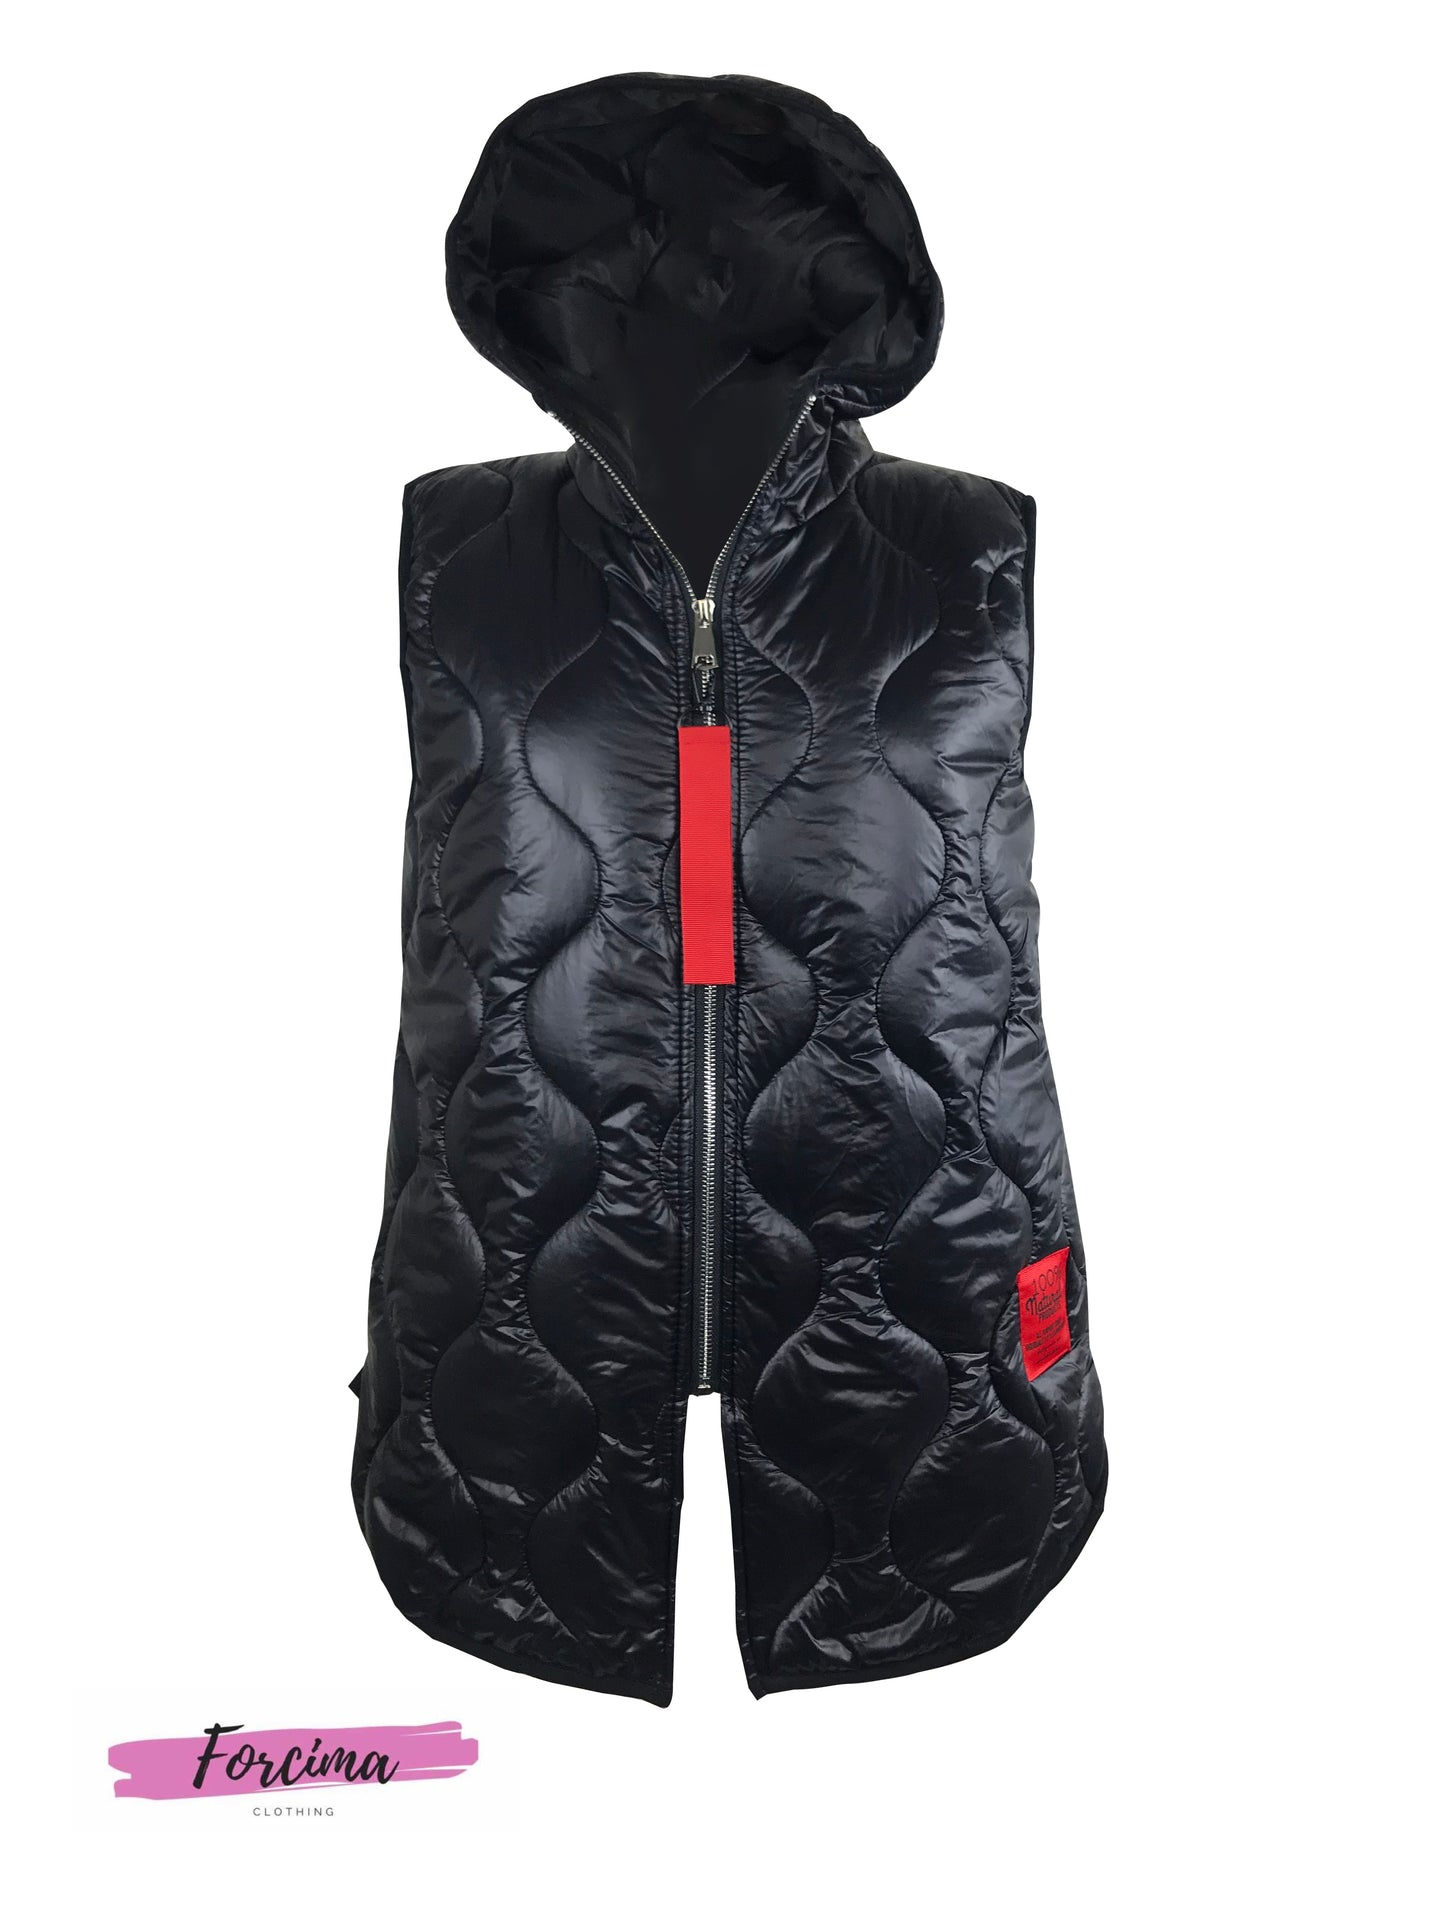 ladies Black puffer waist coat with red zip toggle